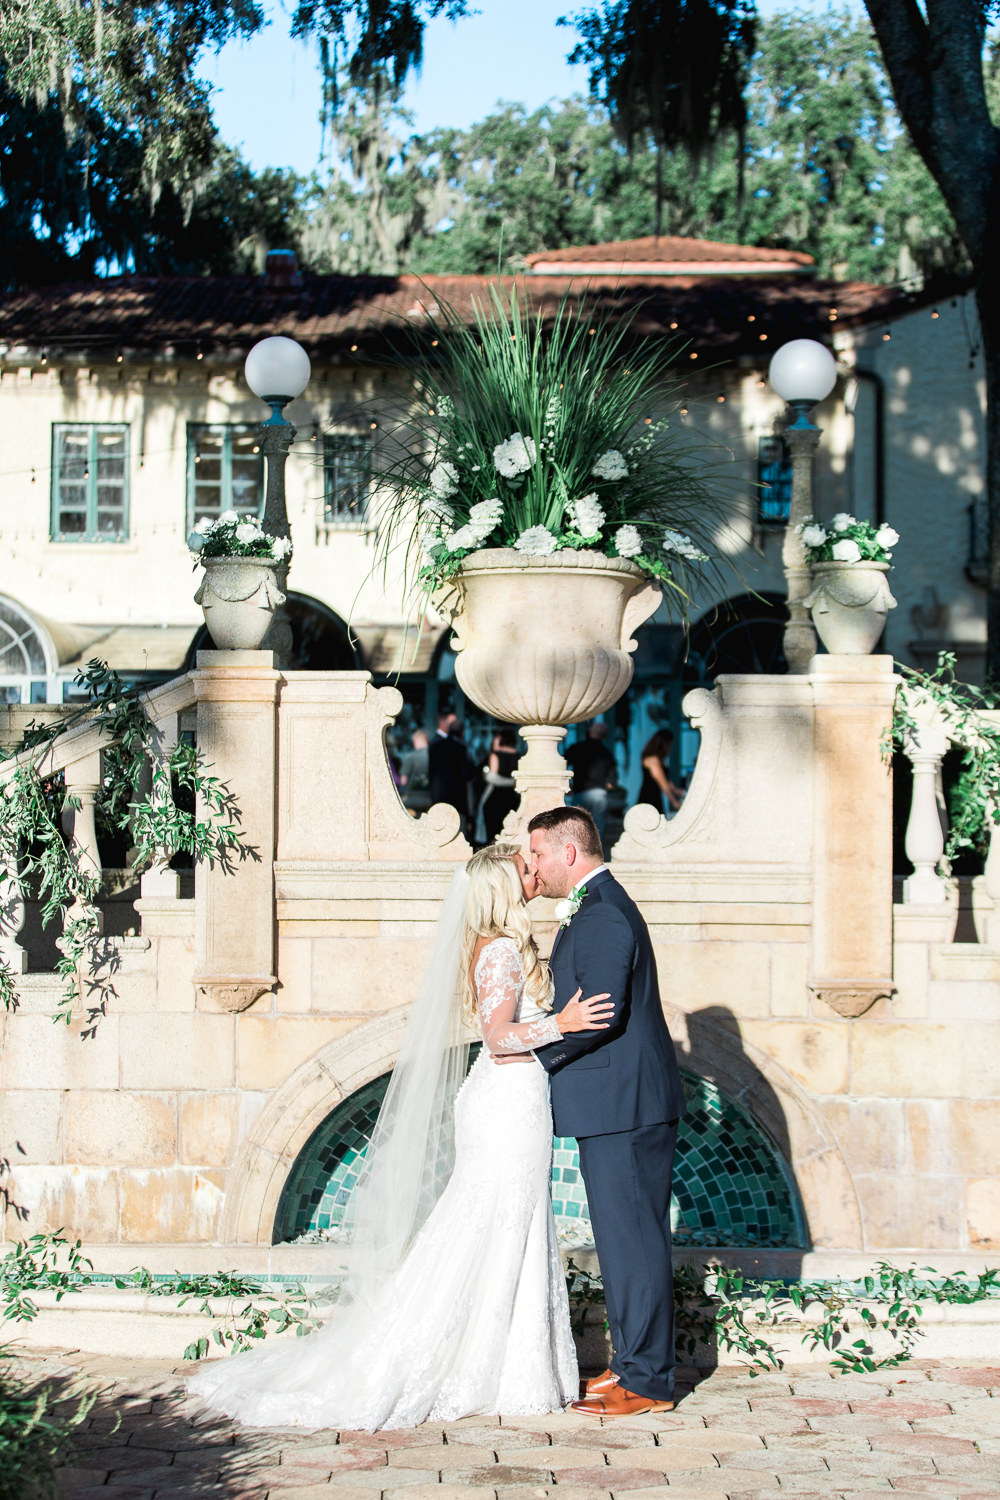 bride and groom's first kiss in this stunning mediterranean style venue